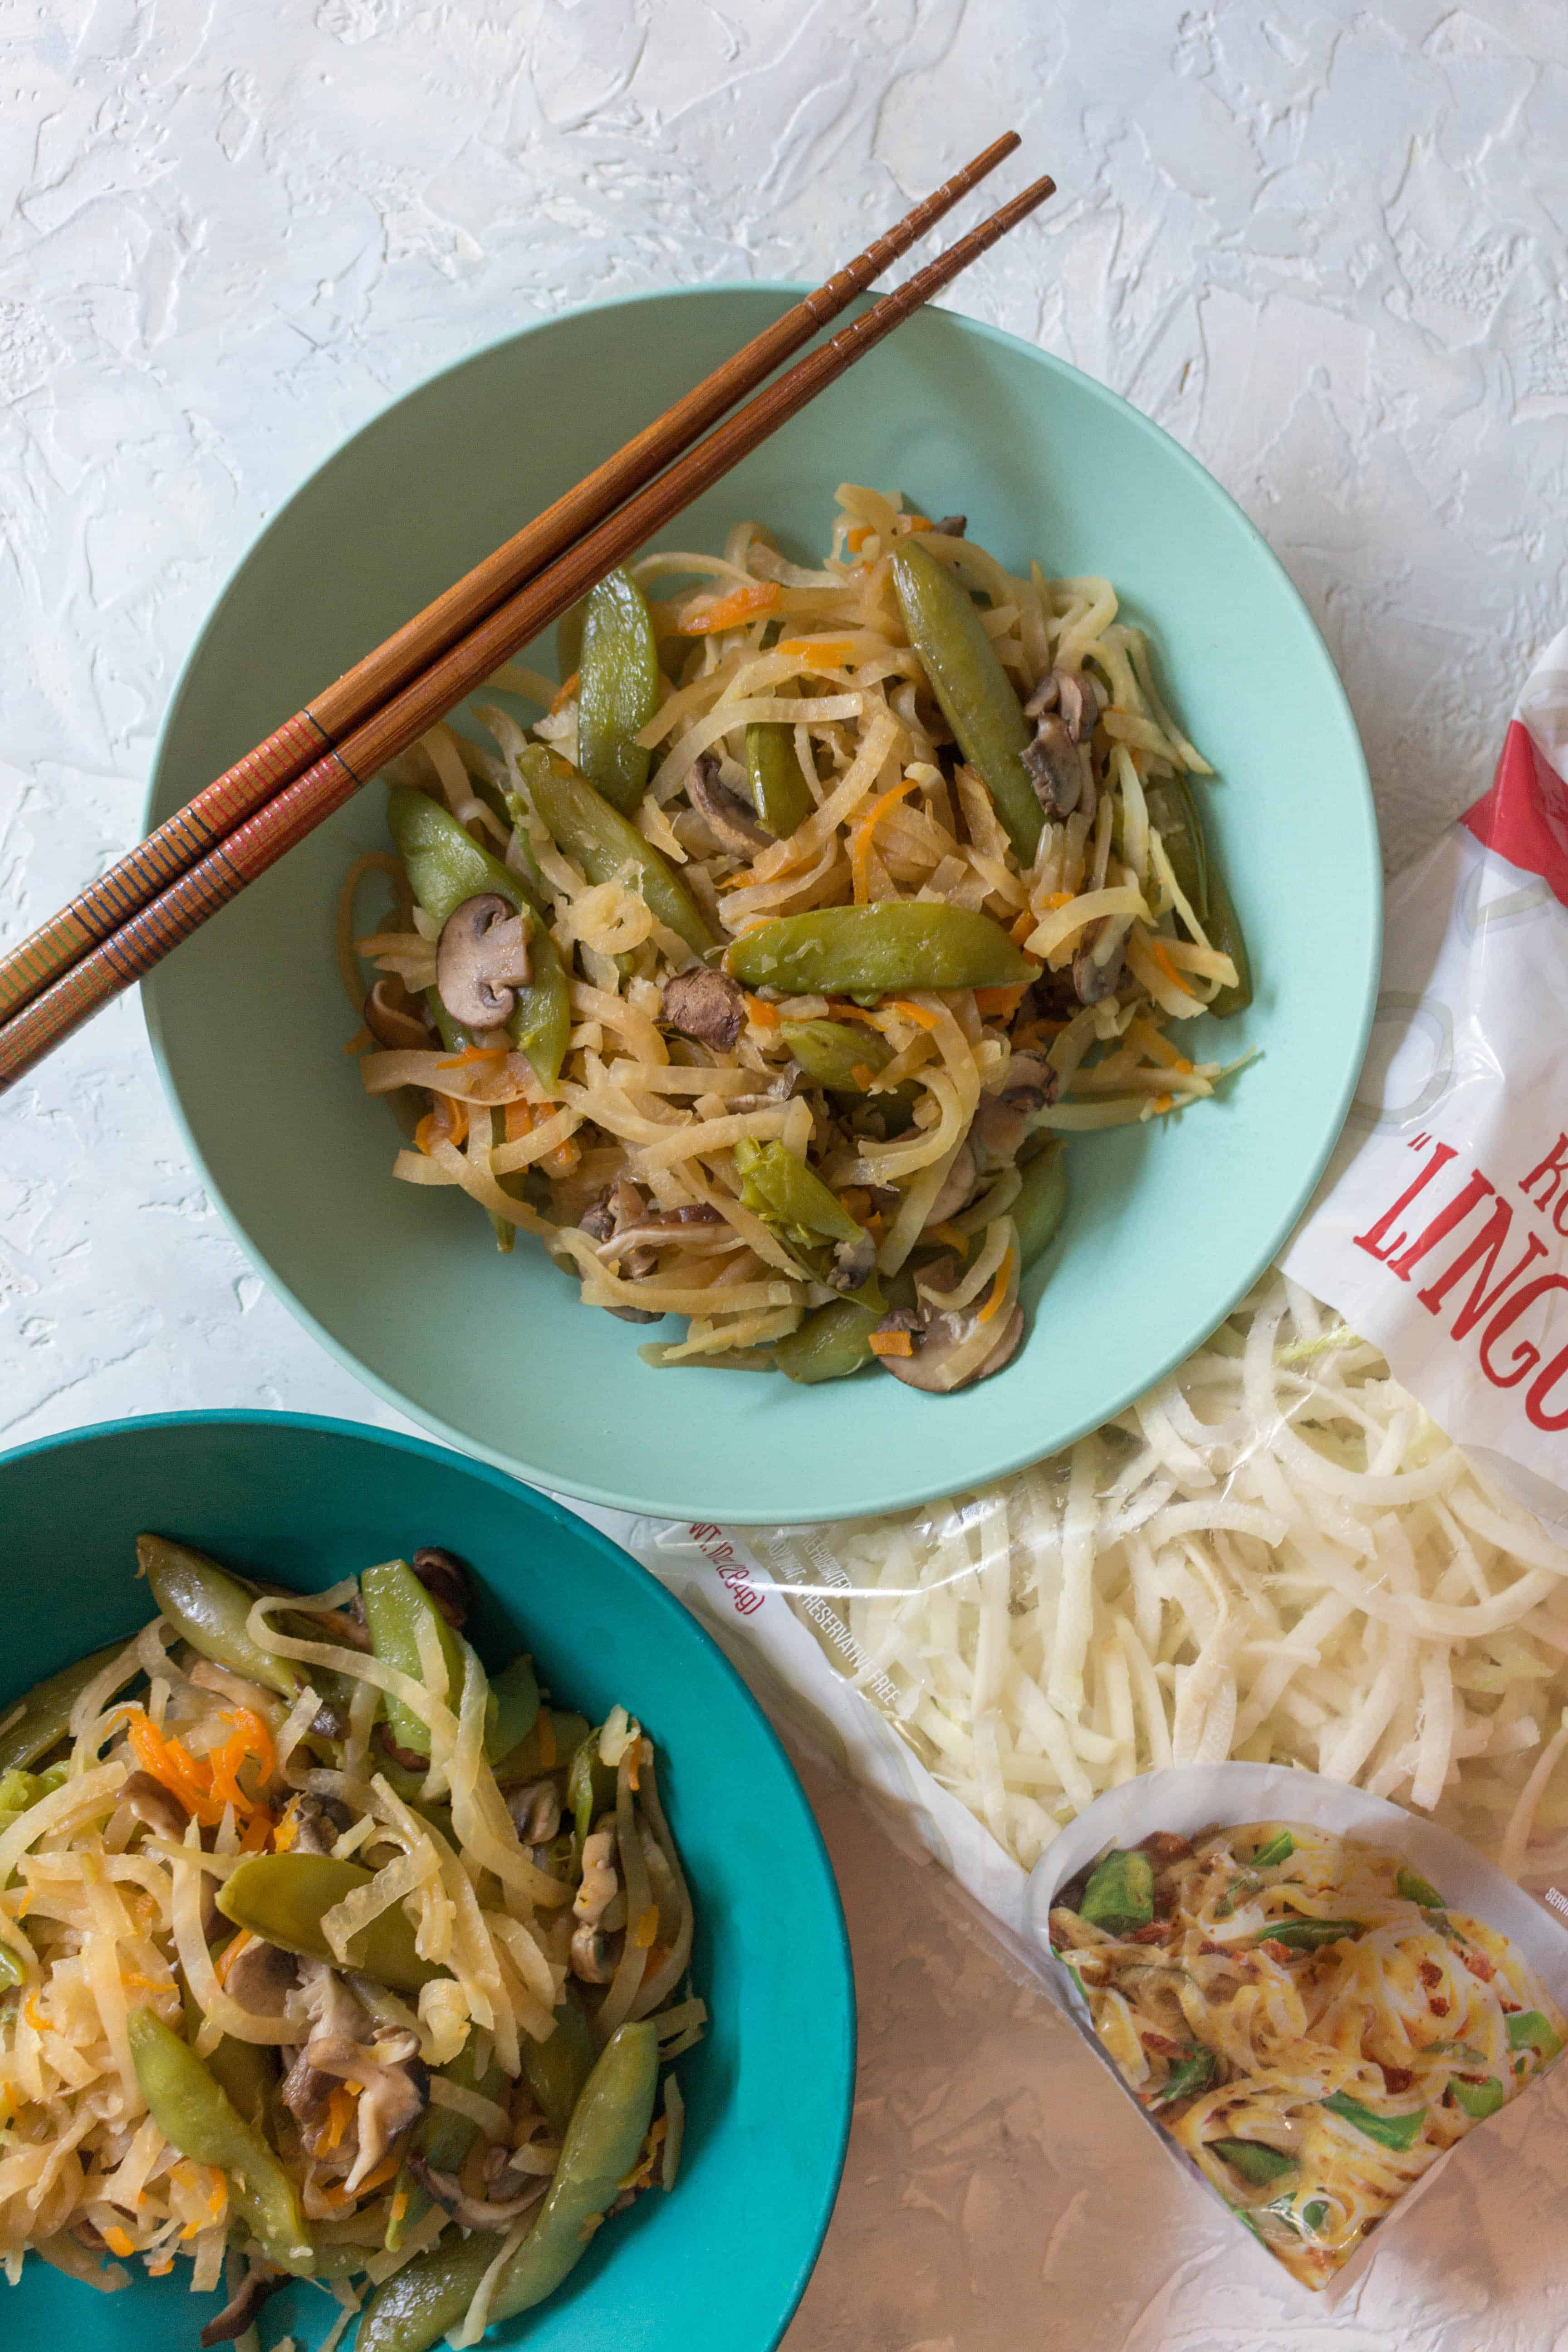 Craving a delicious lo mein but want to cut back on the carbs? Try this delicious low carb lo mein made with kohlrabi noodles made in 5 minutes in an Instant Pot!